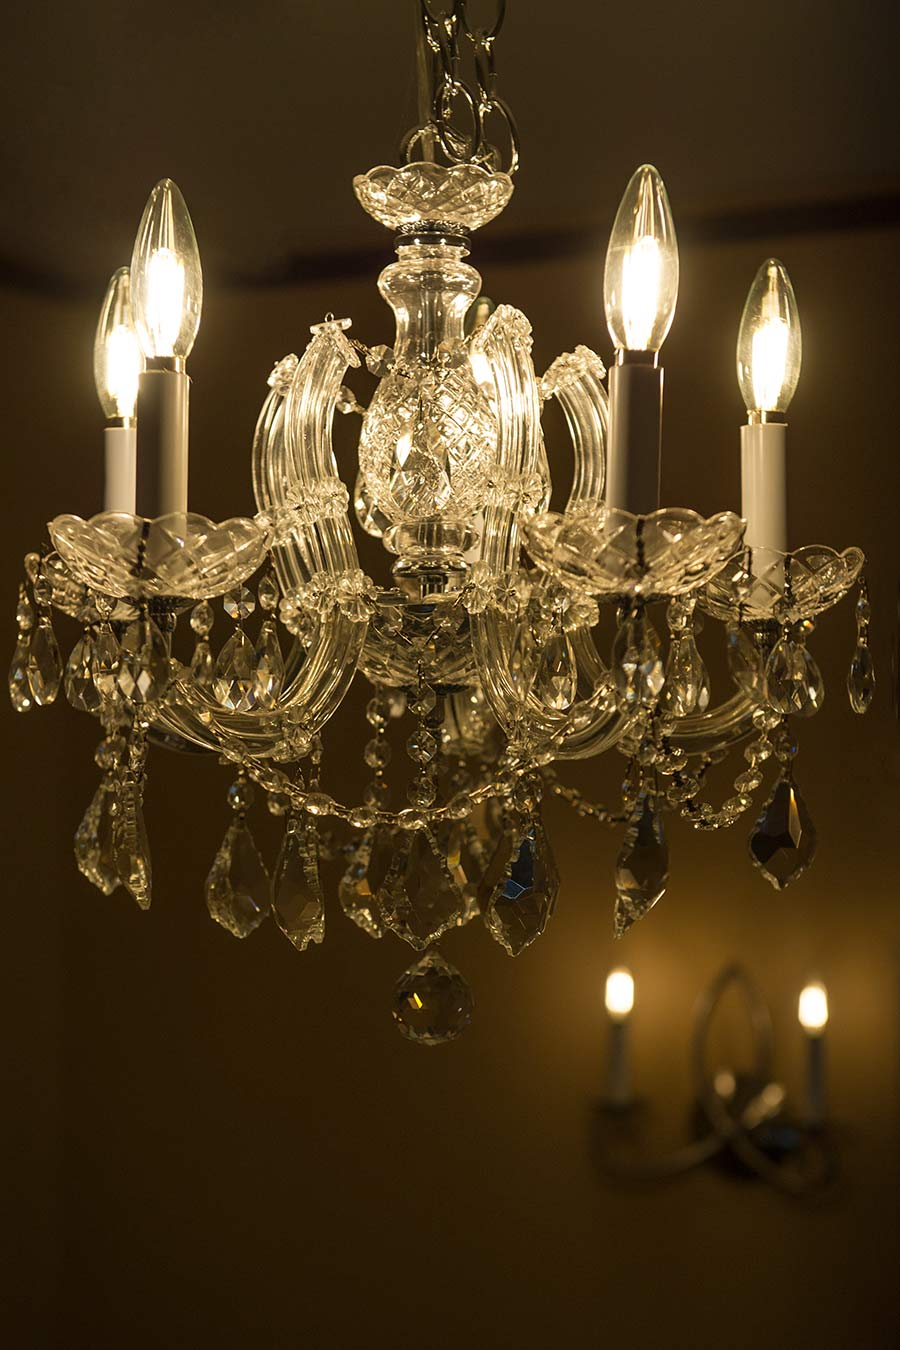 above b10dx4dfe12 featured in both a decorative wall sconce and a chandelier light fixture